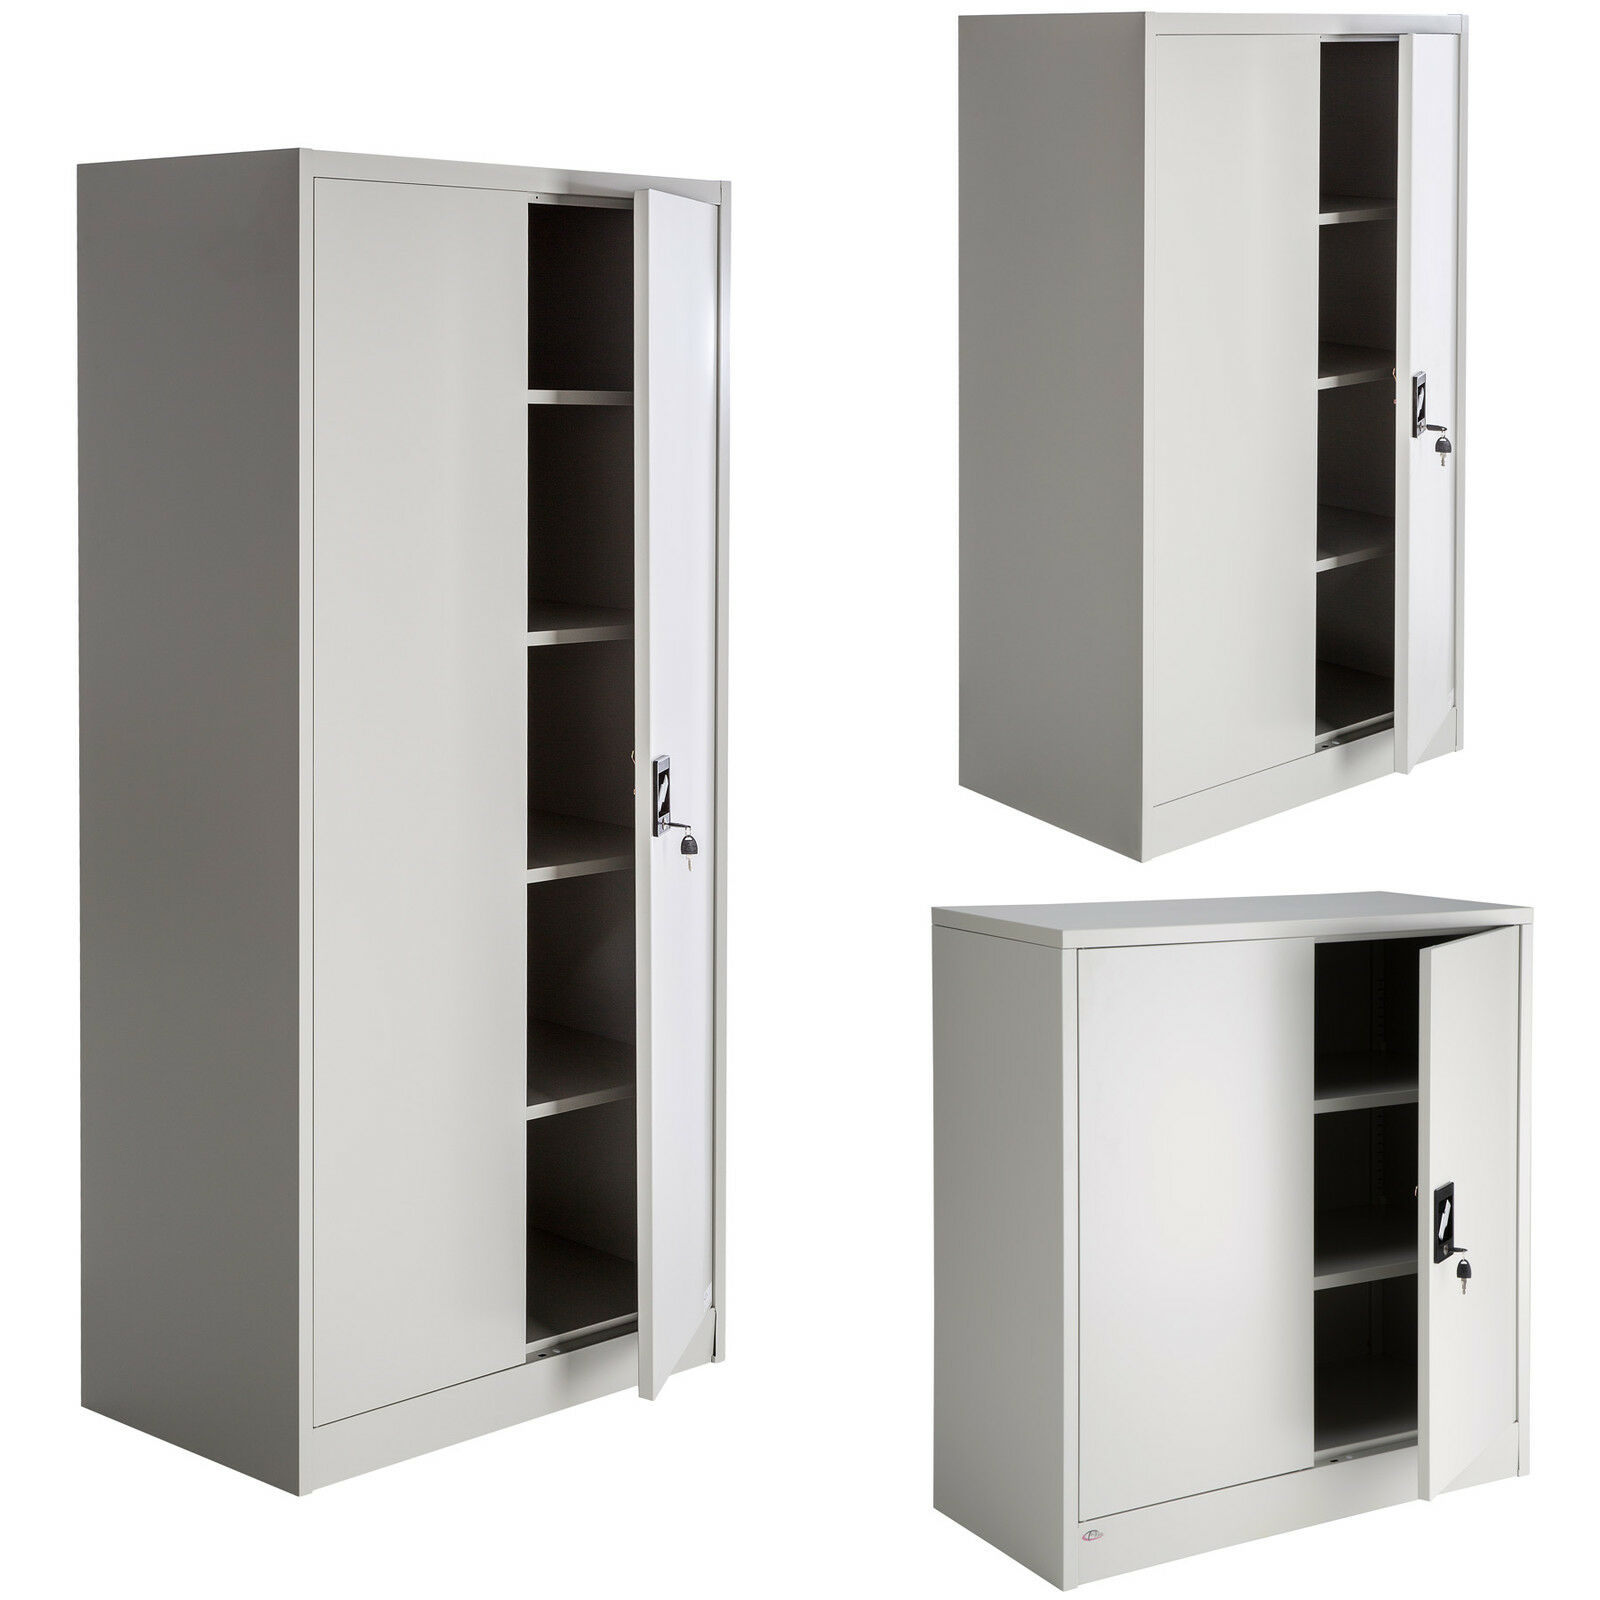 armoire de rangement metallique meuble de bureau armoire fichier 2 portes eur 127 90 picclick fr. Black Bedroom Furniture Sets. Home Design Ideas